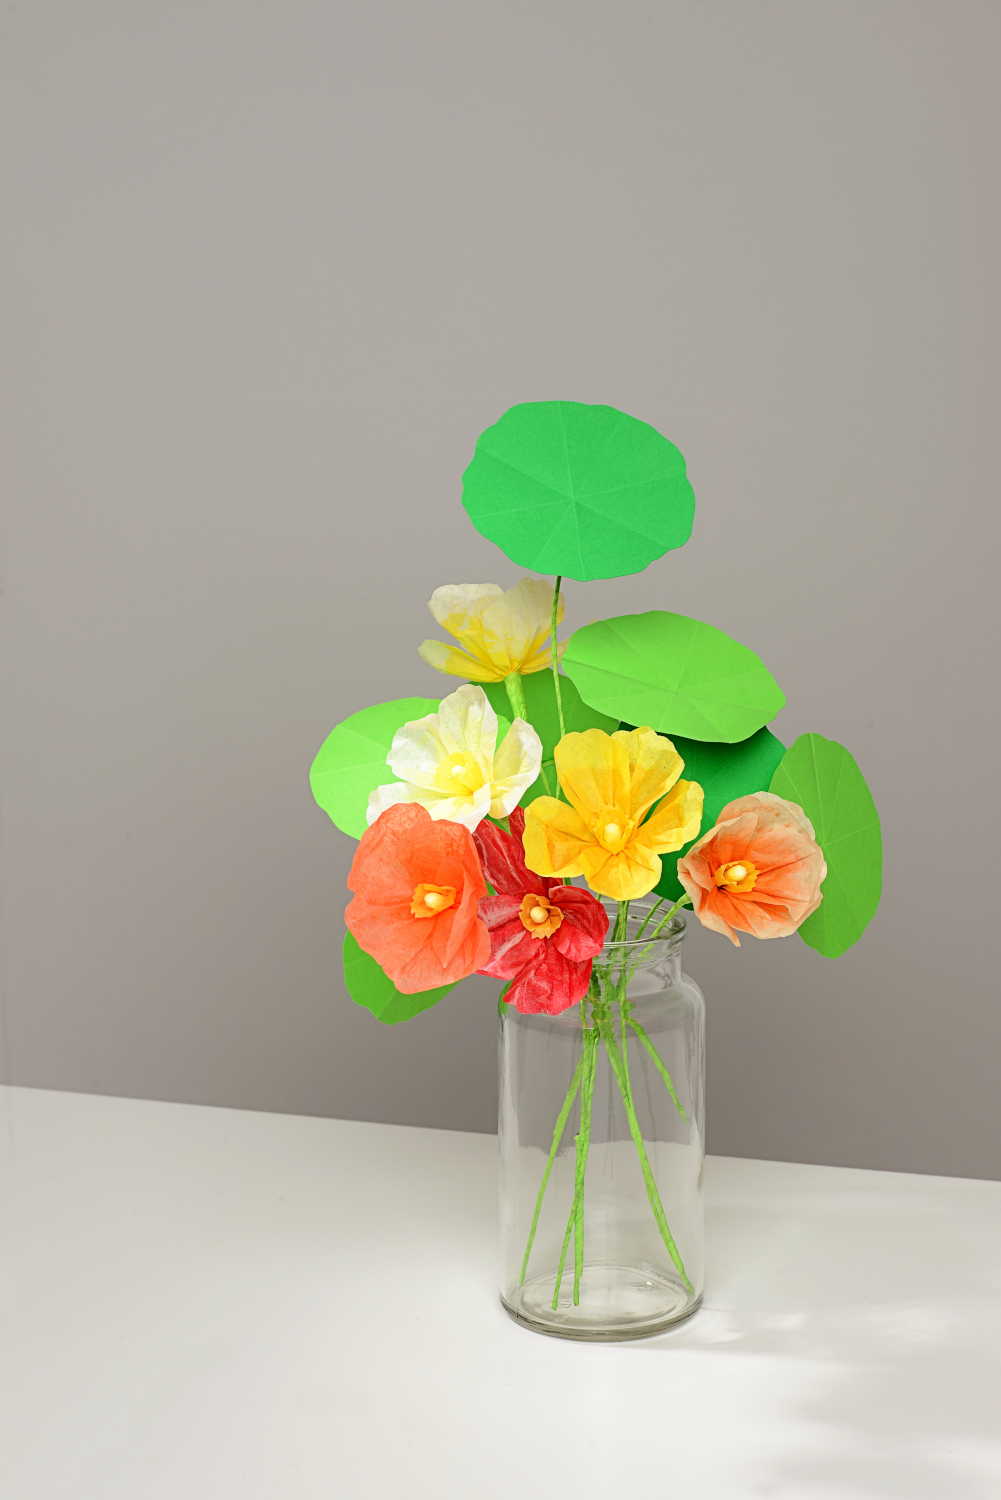 Paperflowers_010.JPG